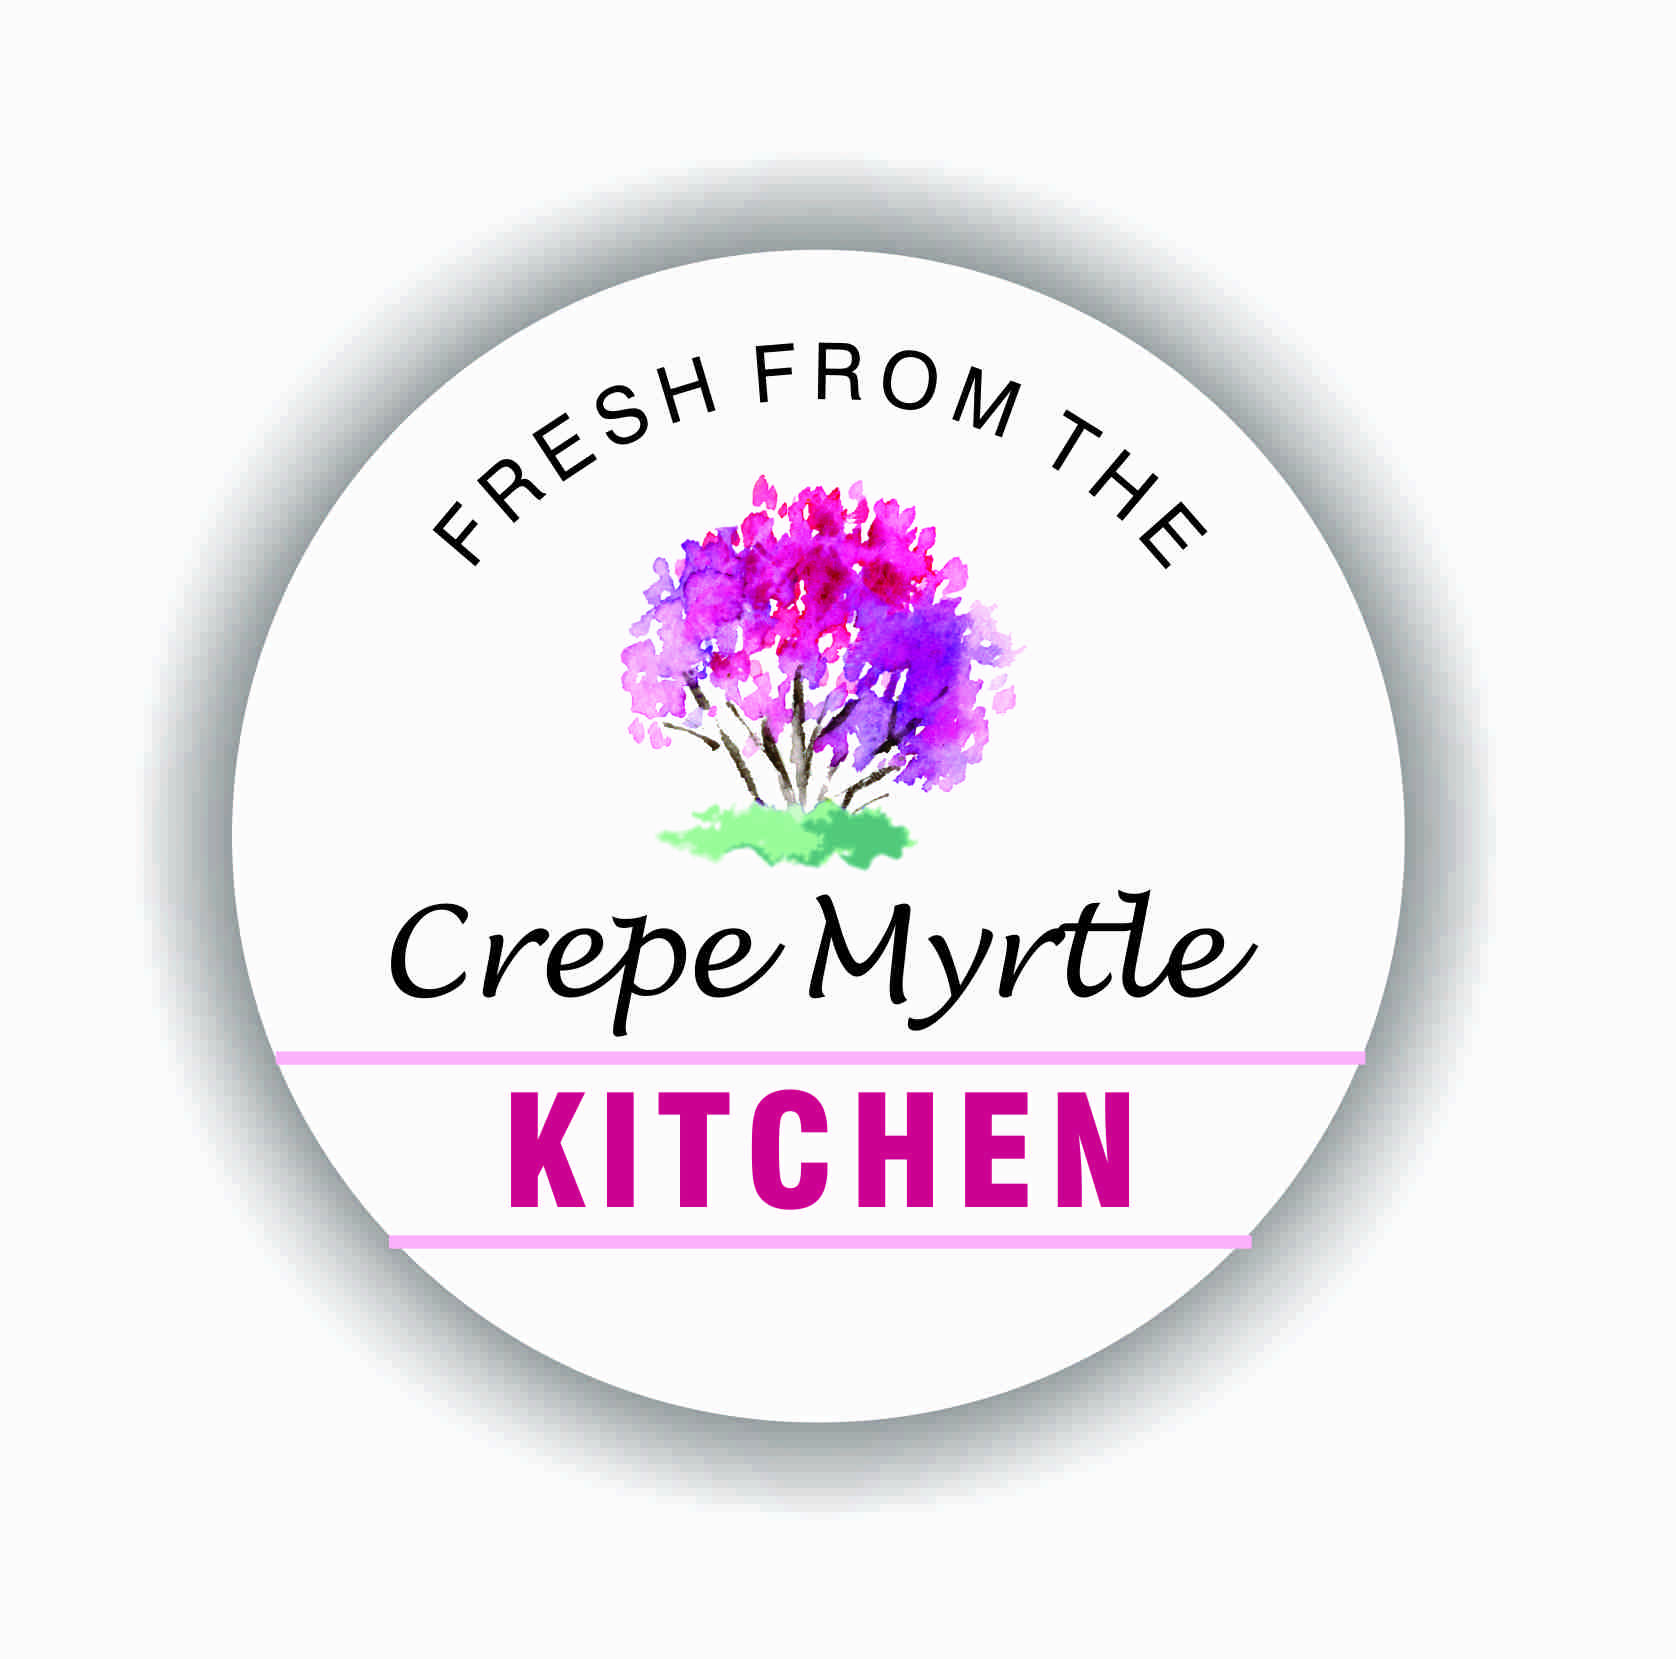 crepe myrtle kitchen logo design.jpg